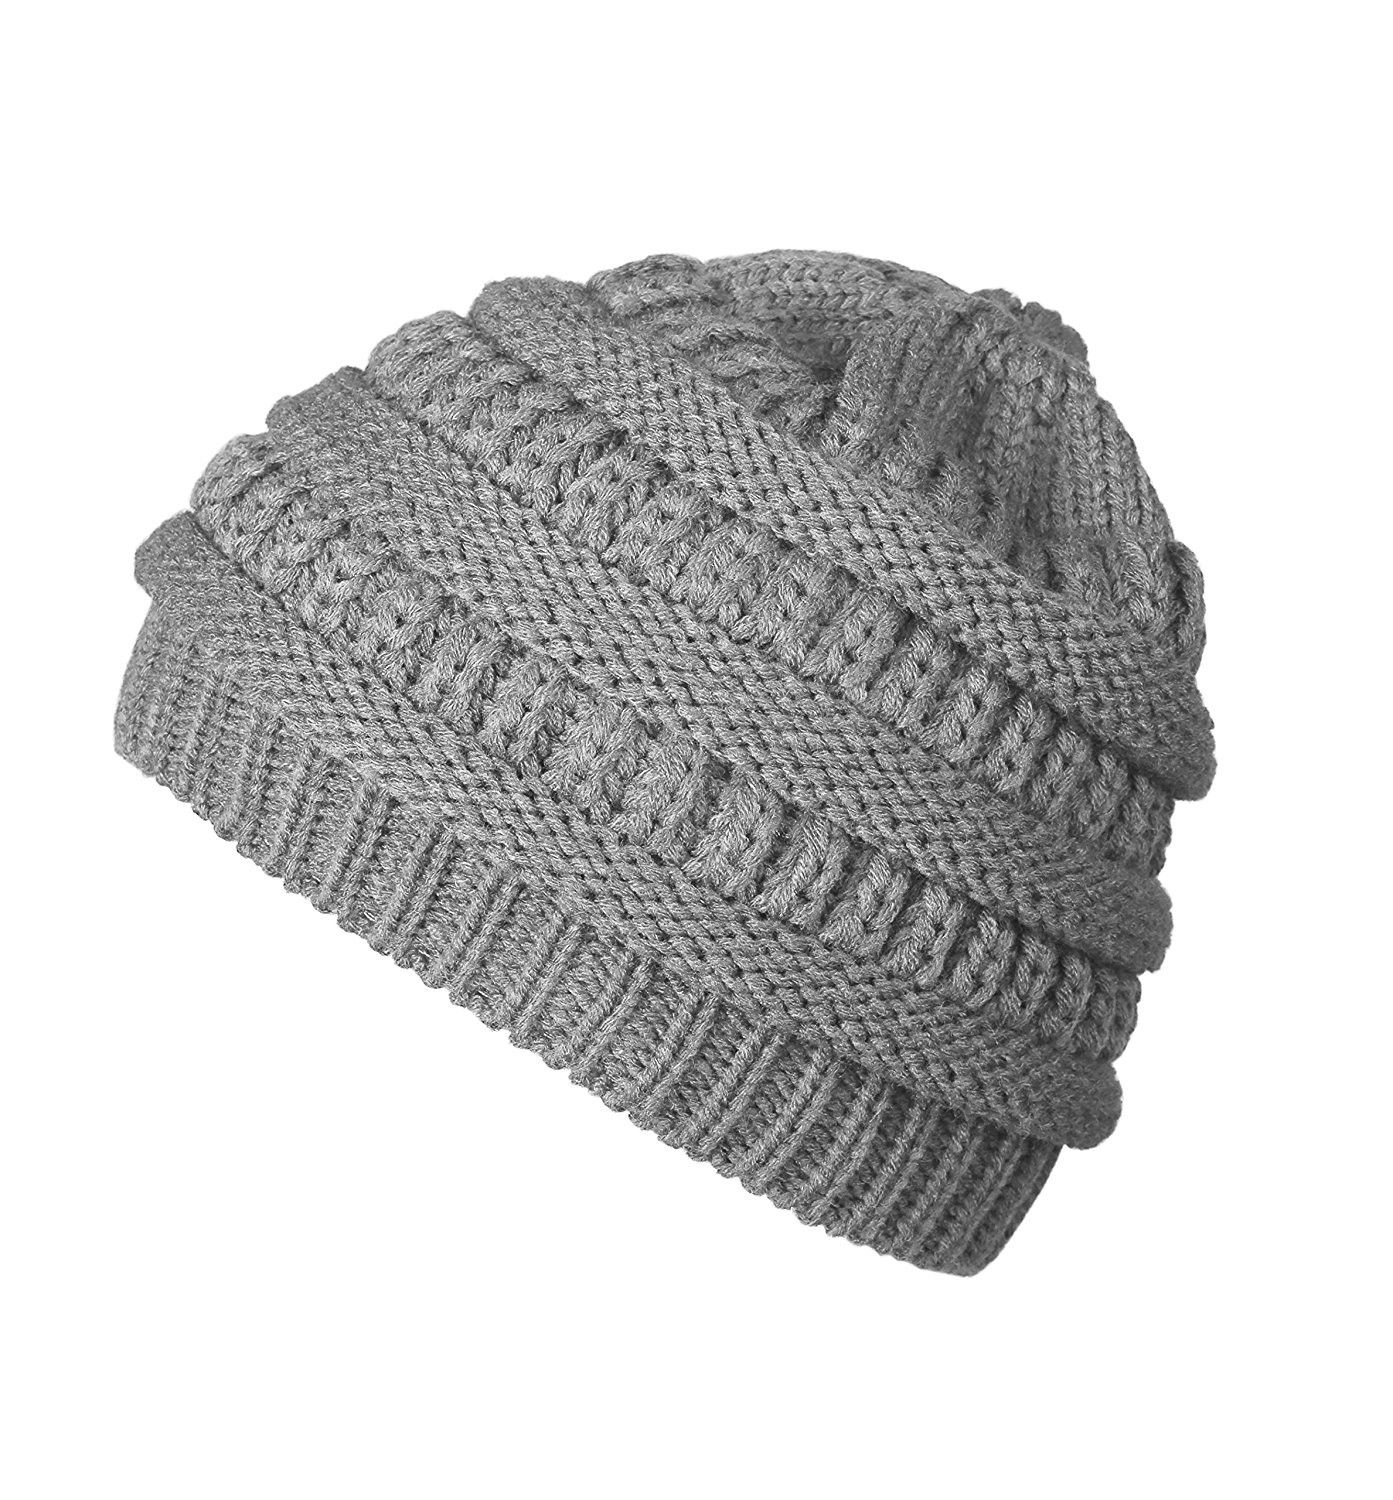 0f1b8246903 Winter Chunky Stretch Slouchy - E ligth Grey - CU185D35R8D - Hats   Caps